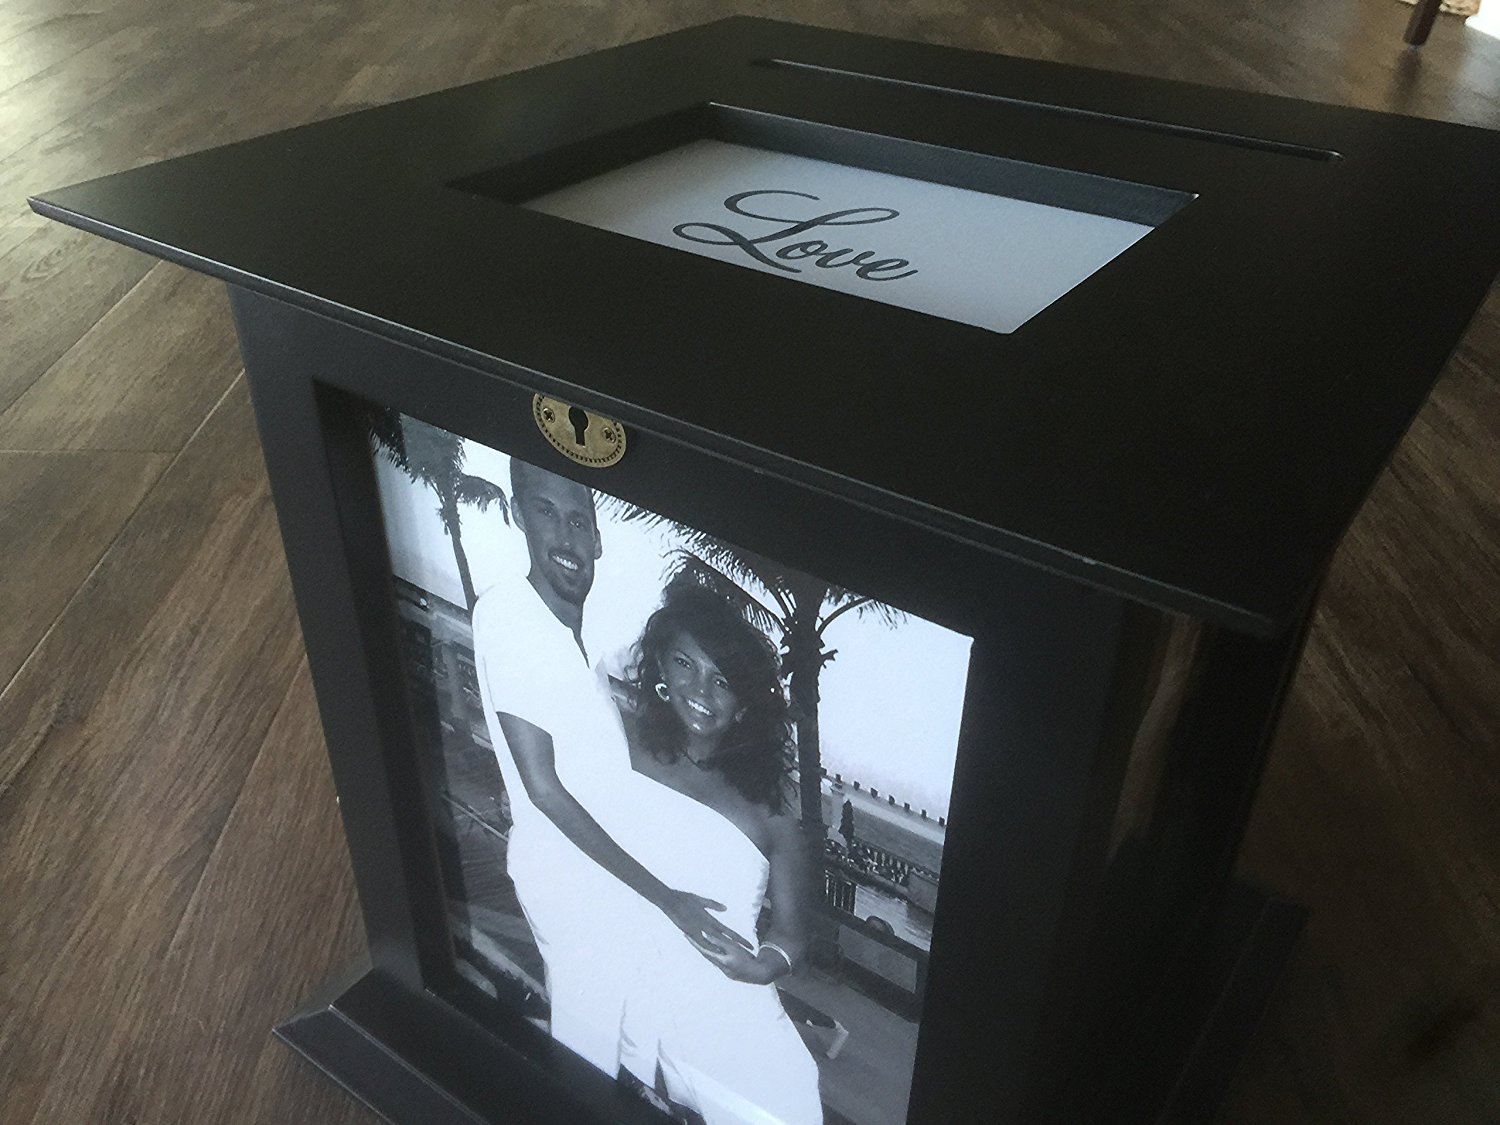 Black Wedding Card Box with LOVE Engraved Plate Included